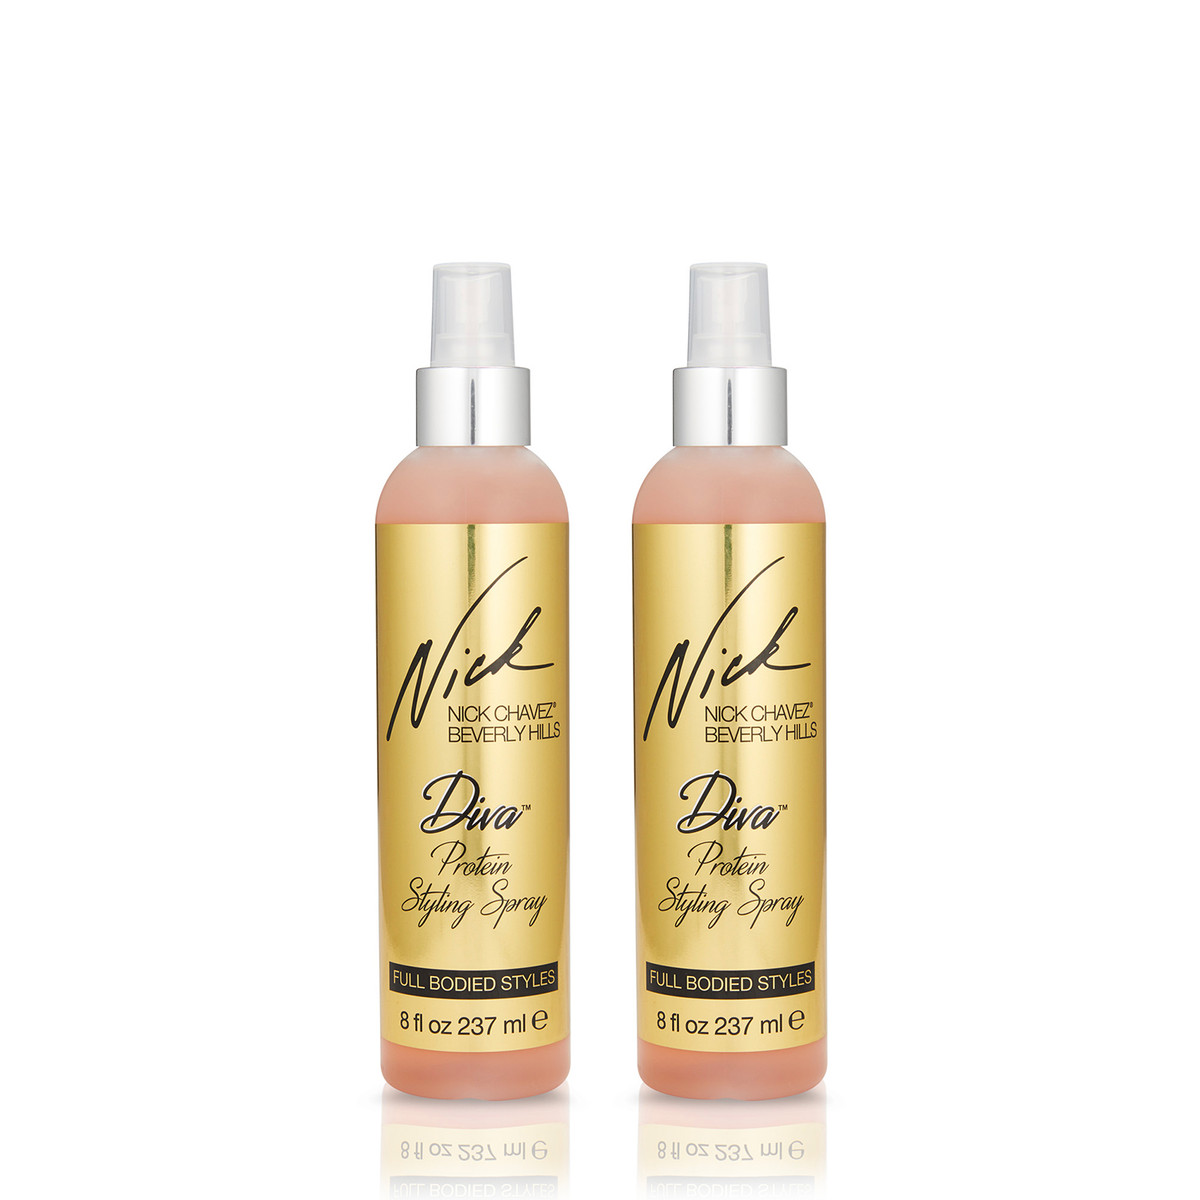 Diva Protein Spray Duo